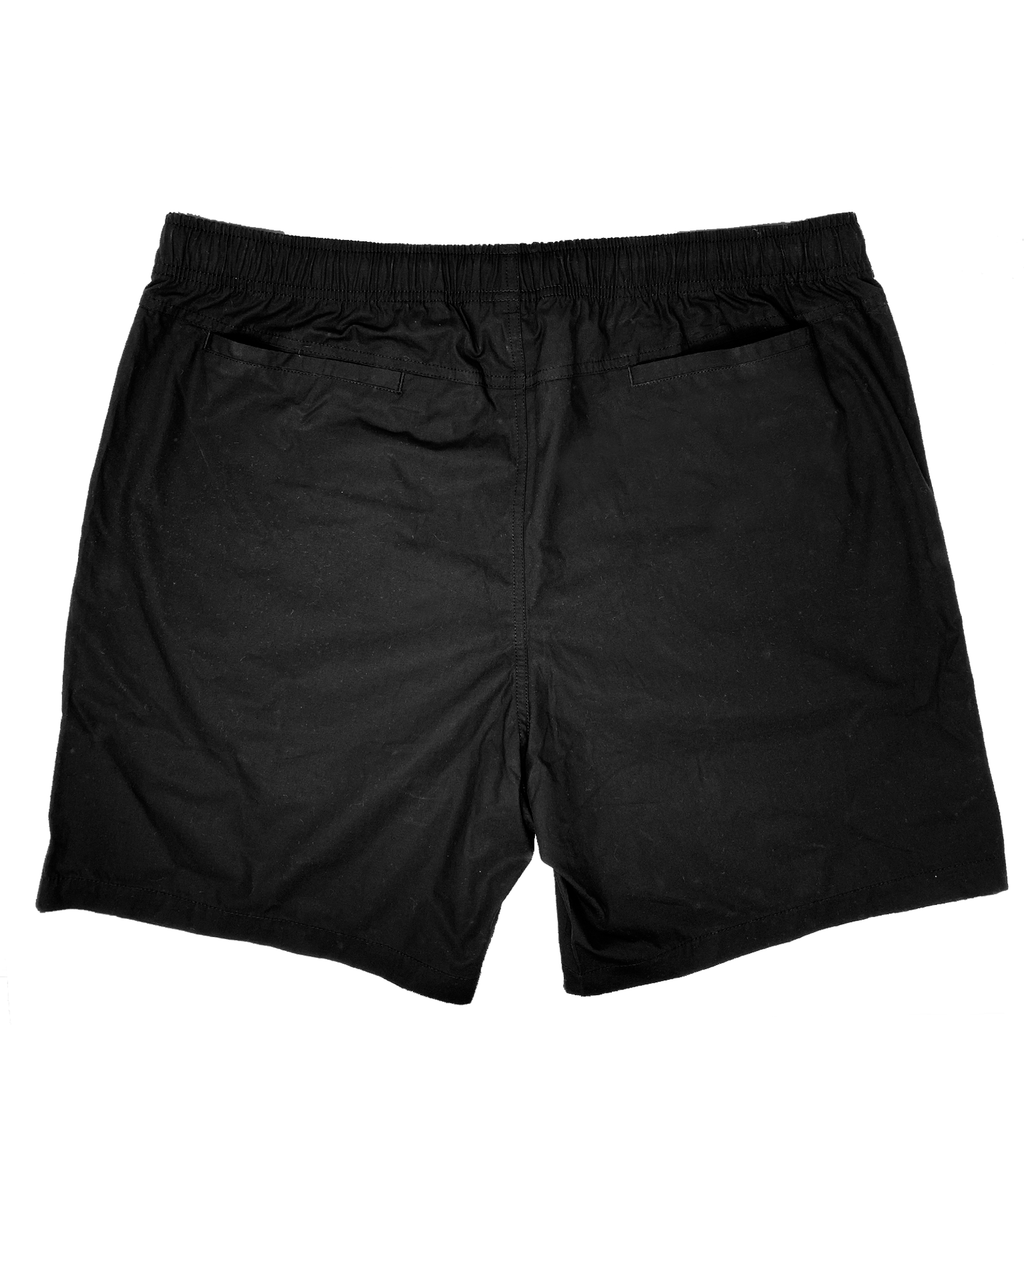 Dade Fence Beach Shorts